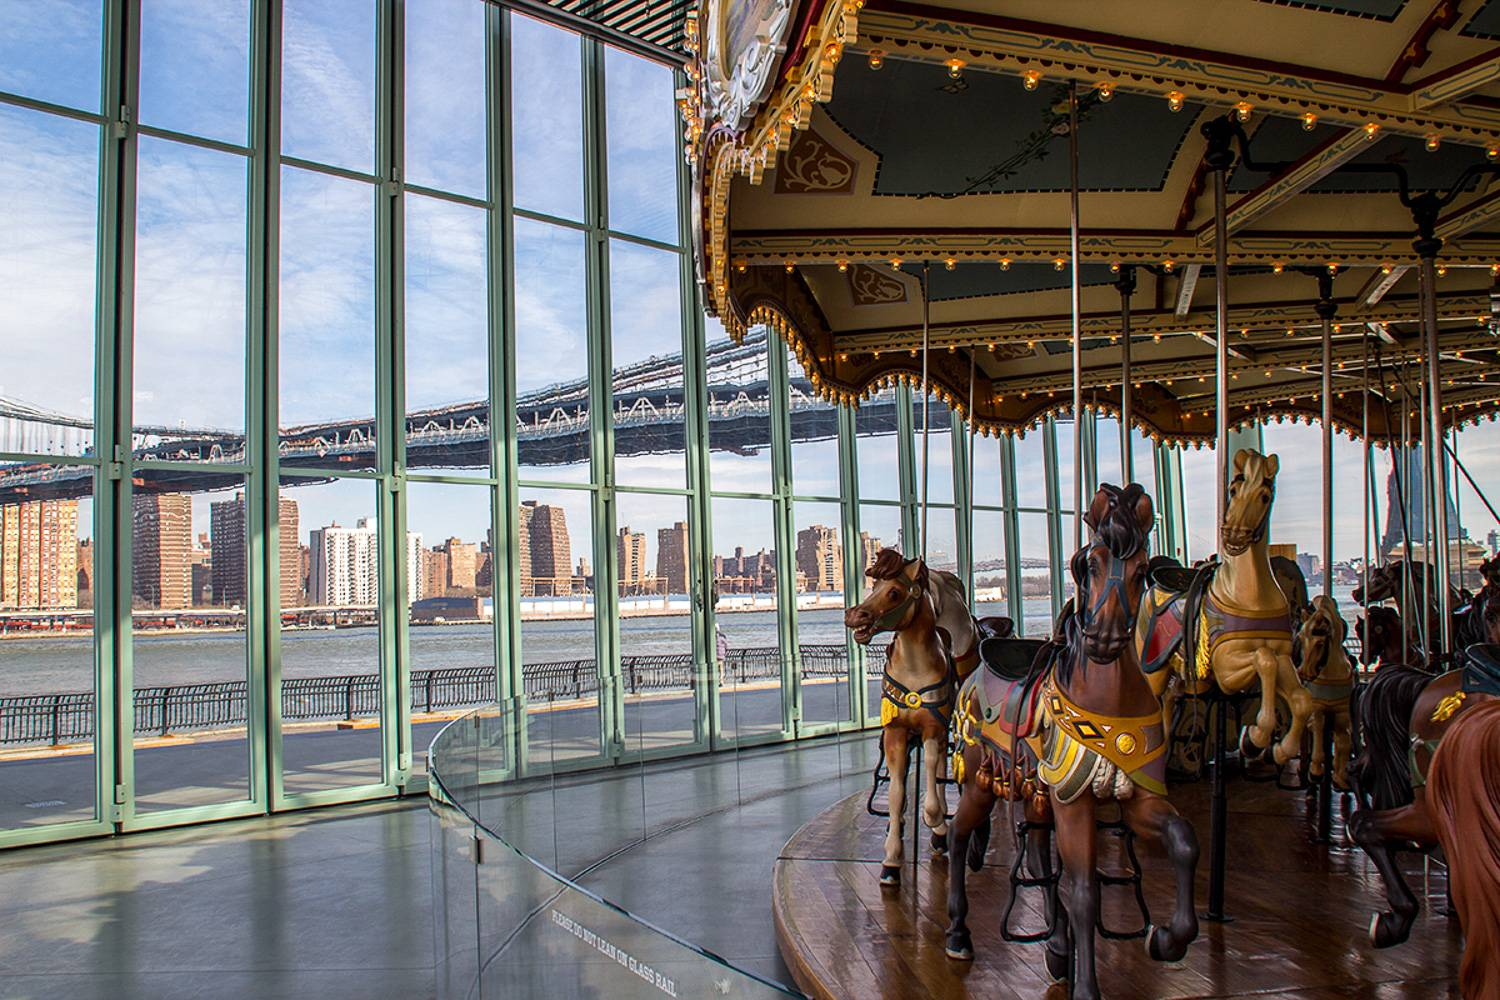 Photo du Jane's Carousel à Brooklyn avec une vue sur la skyline de New York.